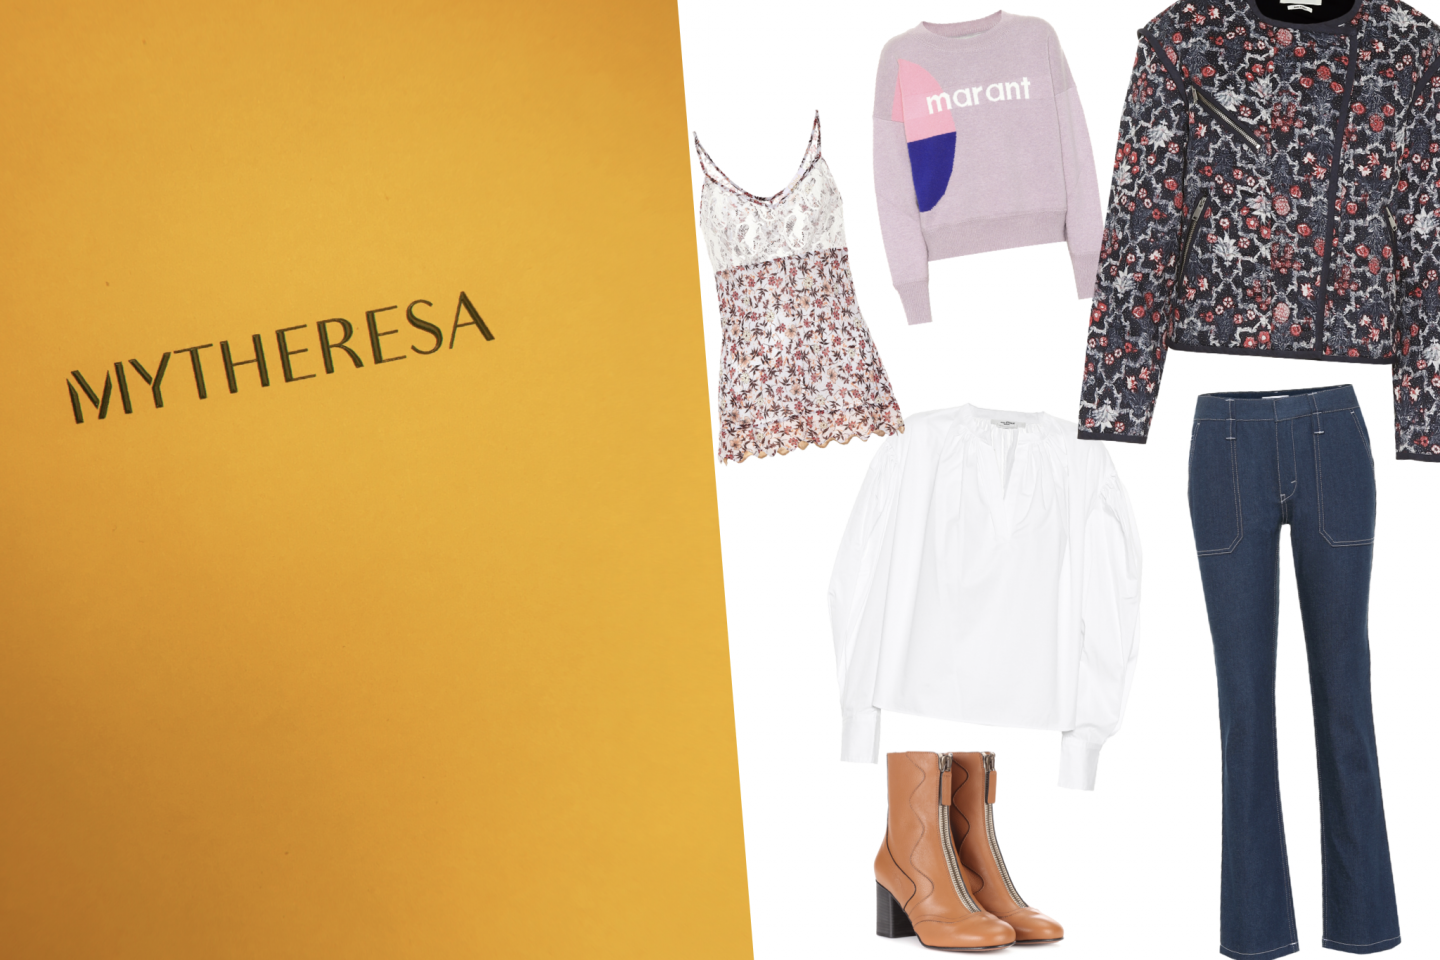 MyTheresa Sale Edit || Extra 20% off clothing